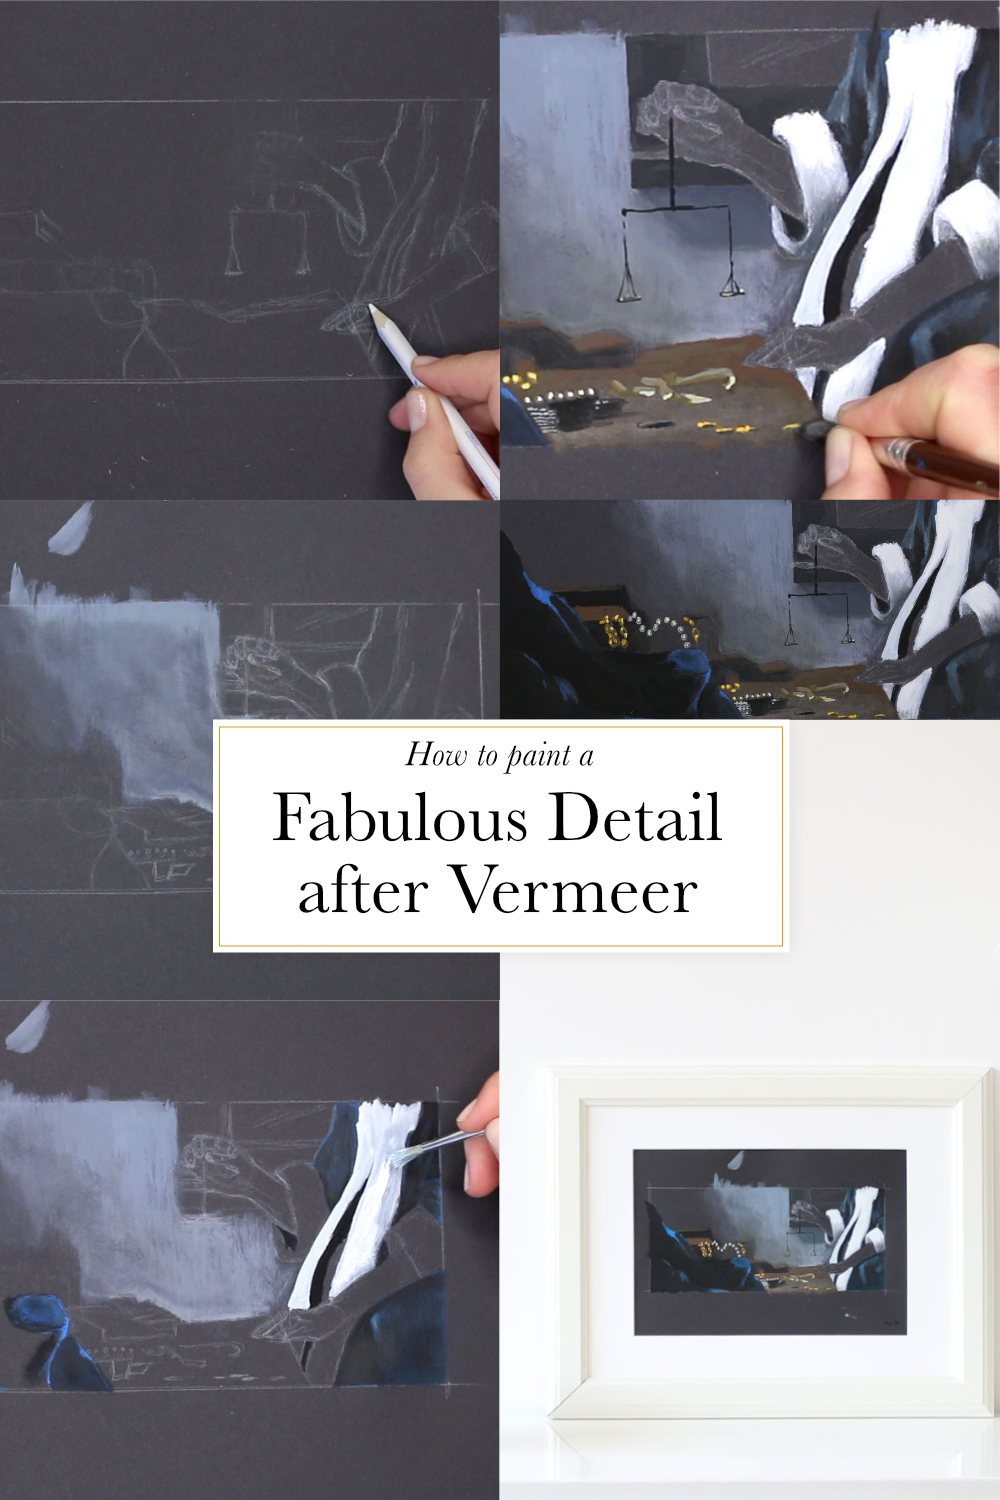 How to paint a fabulous detail after Vermeer    by The Daily Atelier